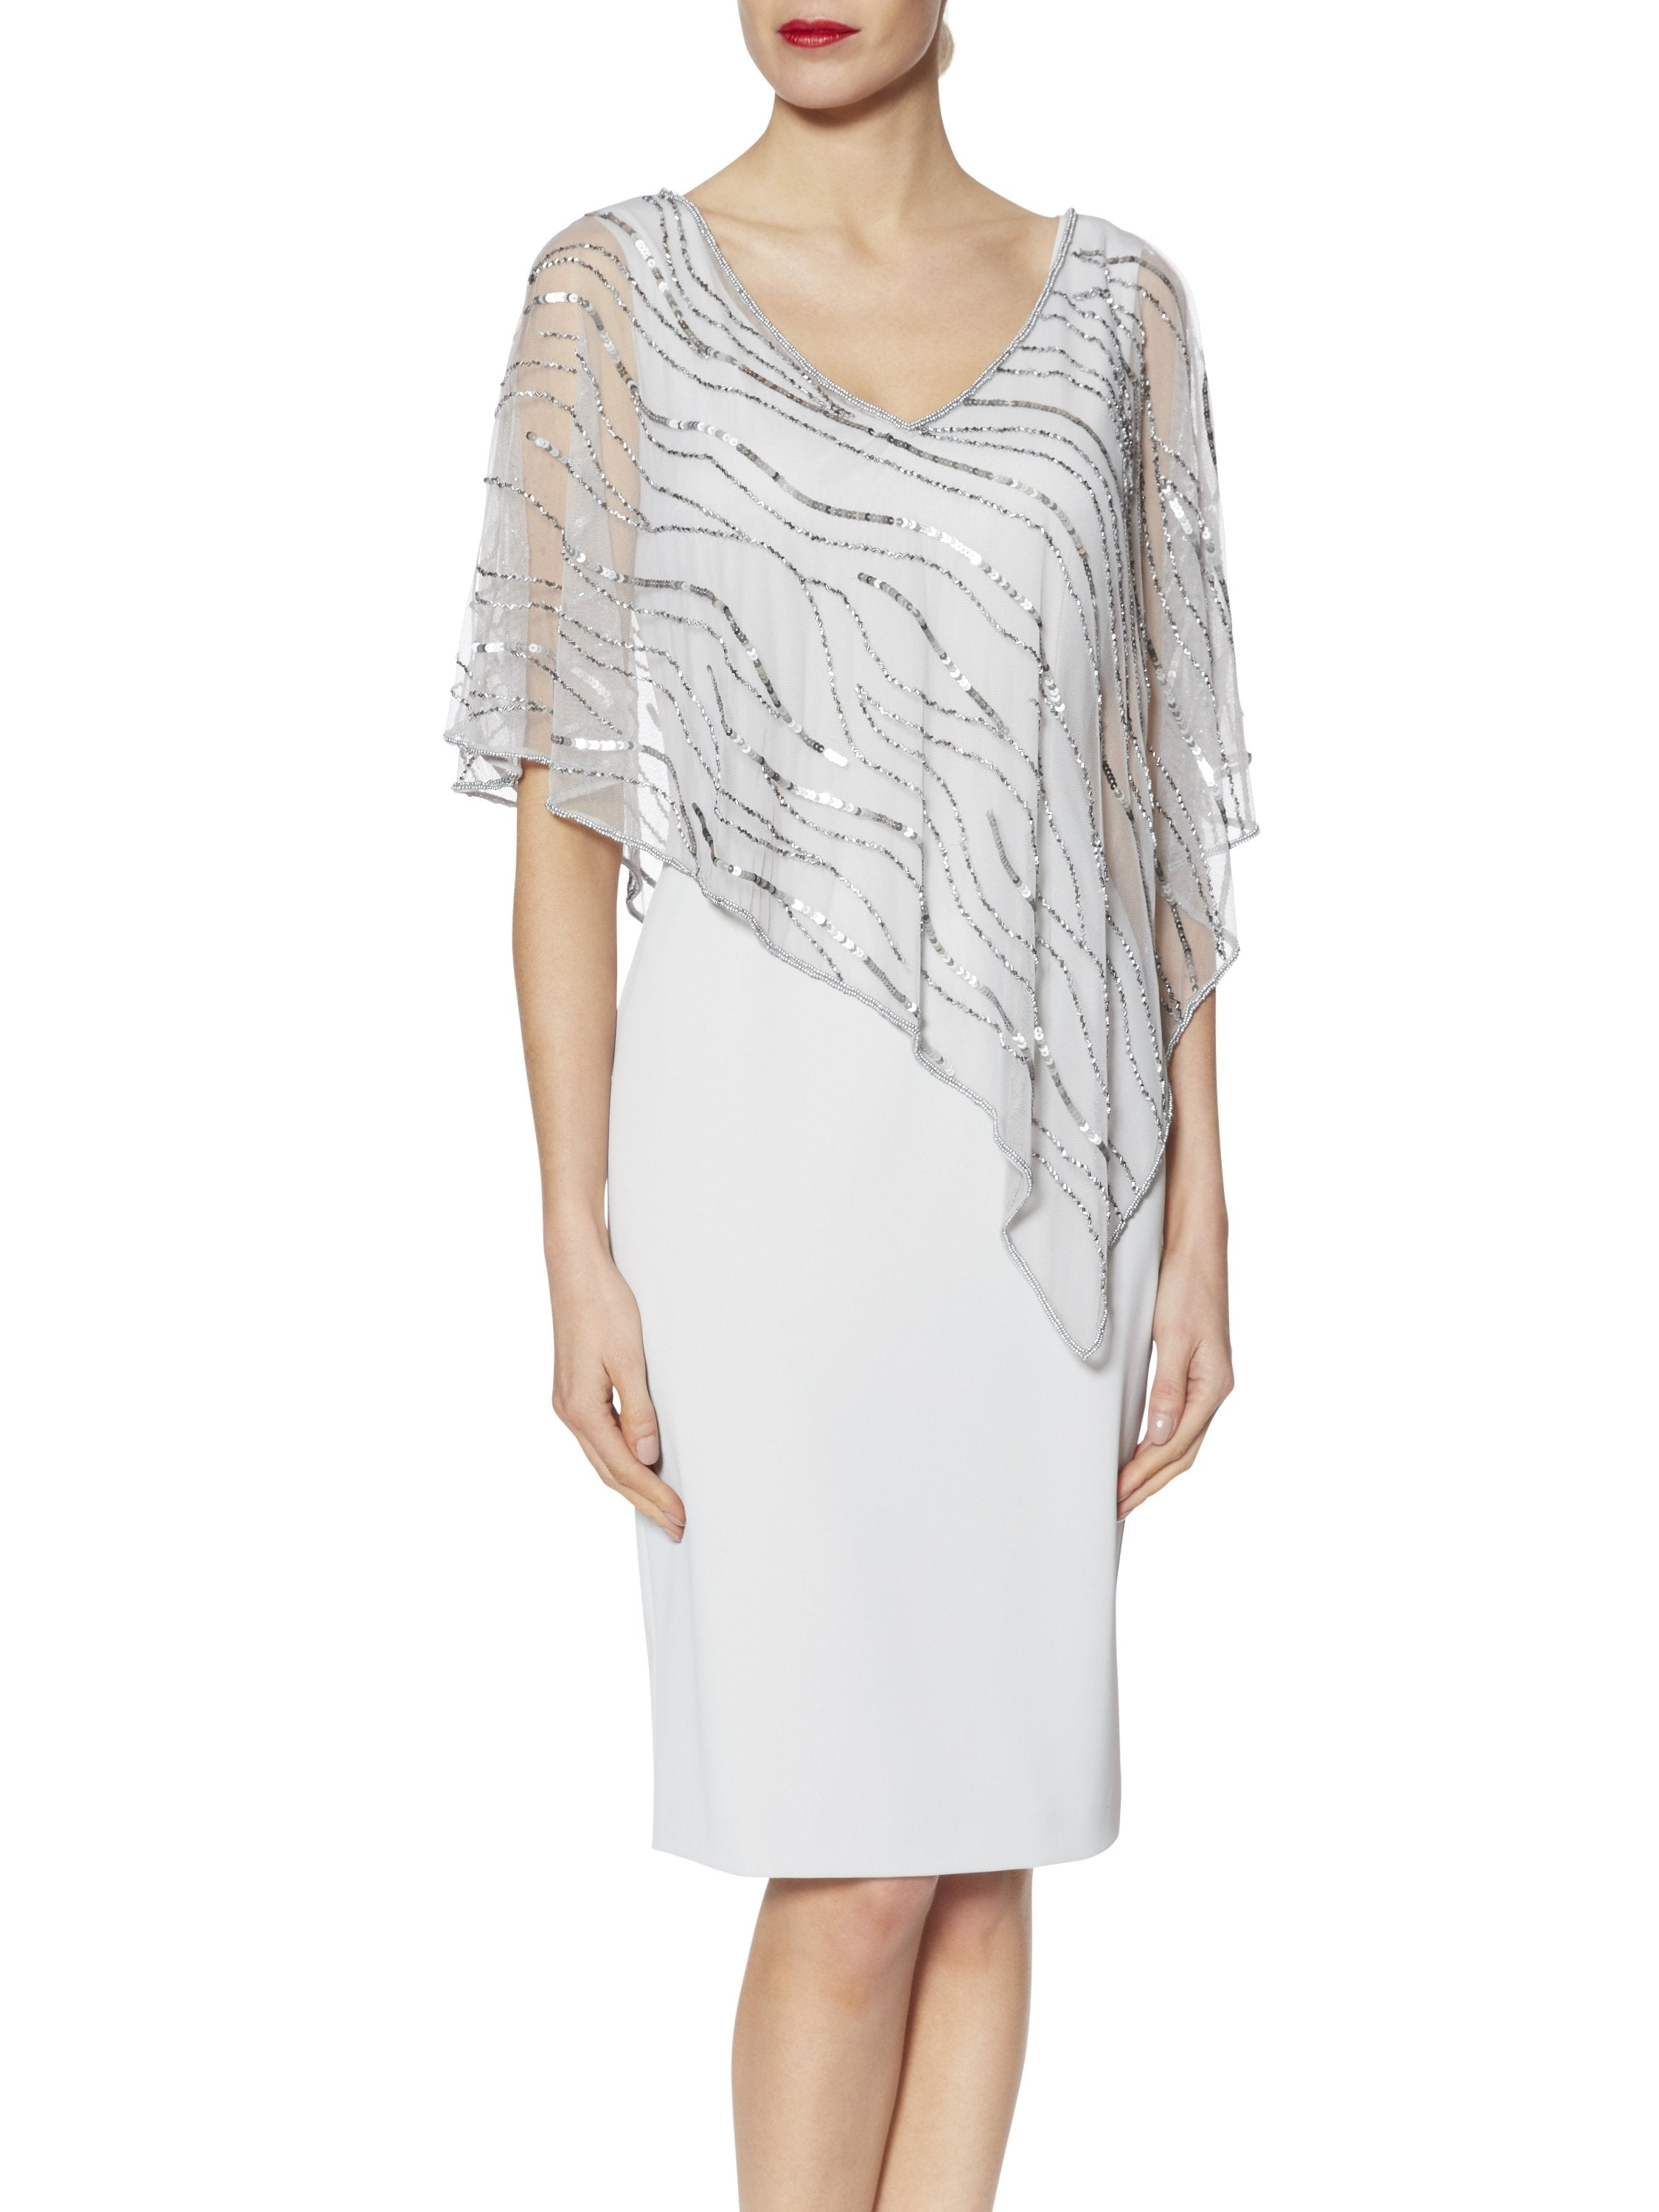 Gina Bacconi Silver Joanna Assymetric Beaded Cape Dress